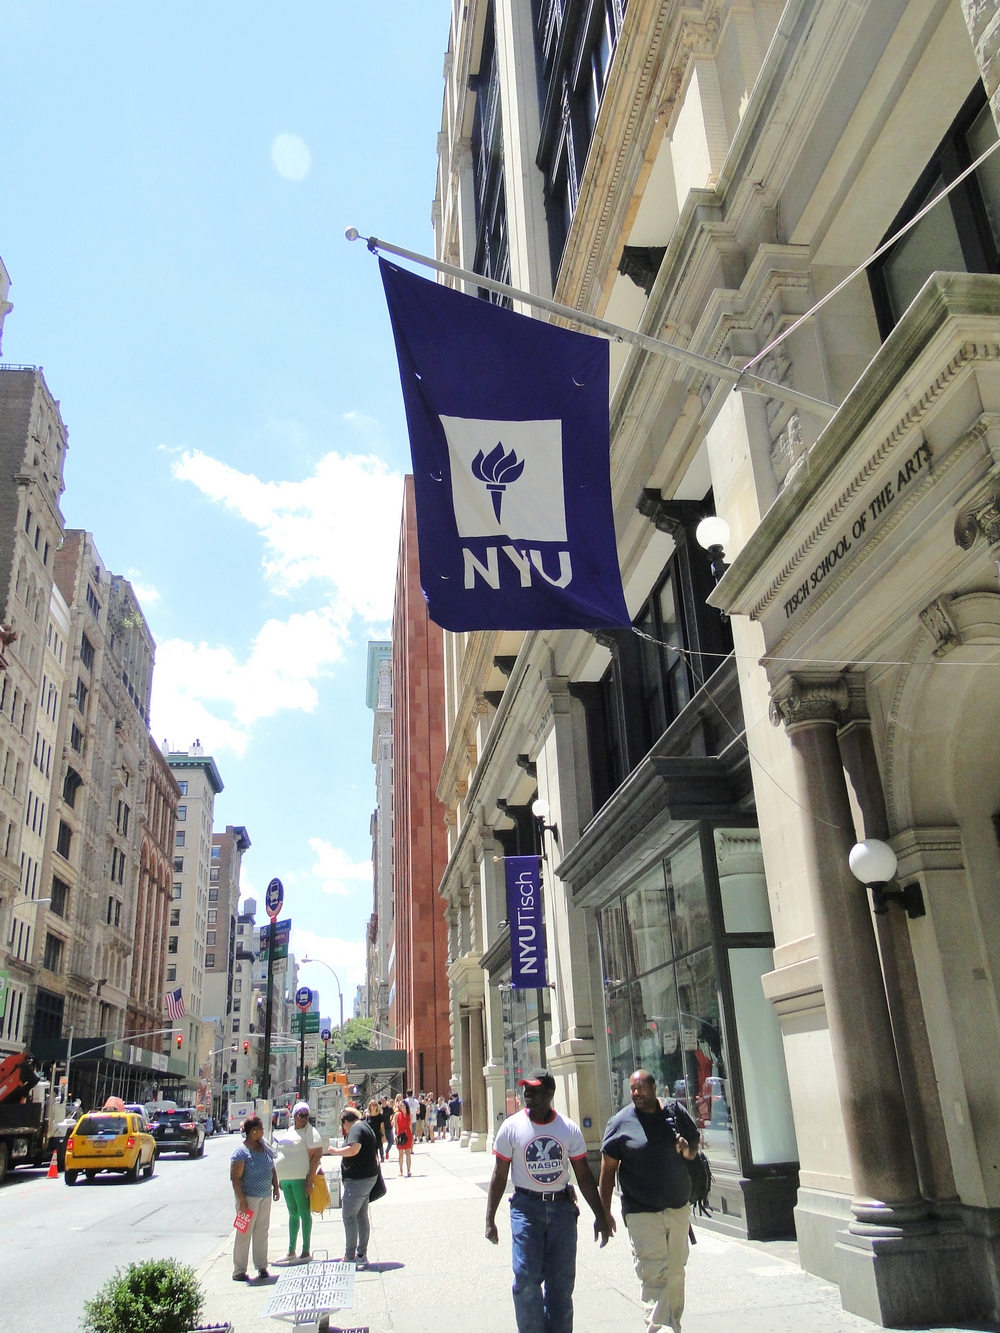 nyu-new-york-university-greenwich-village